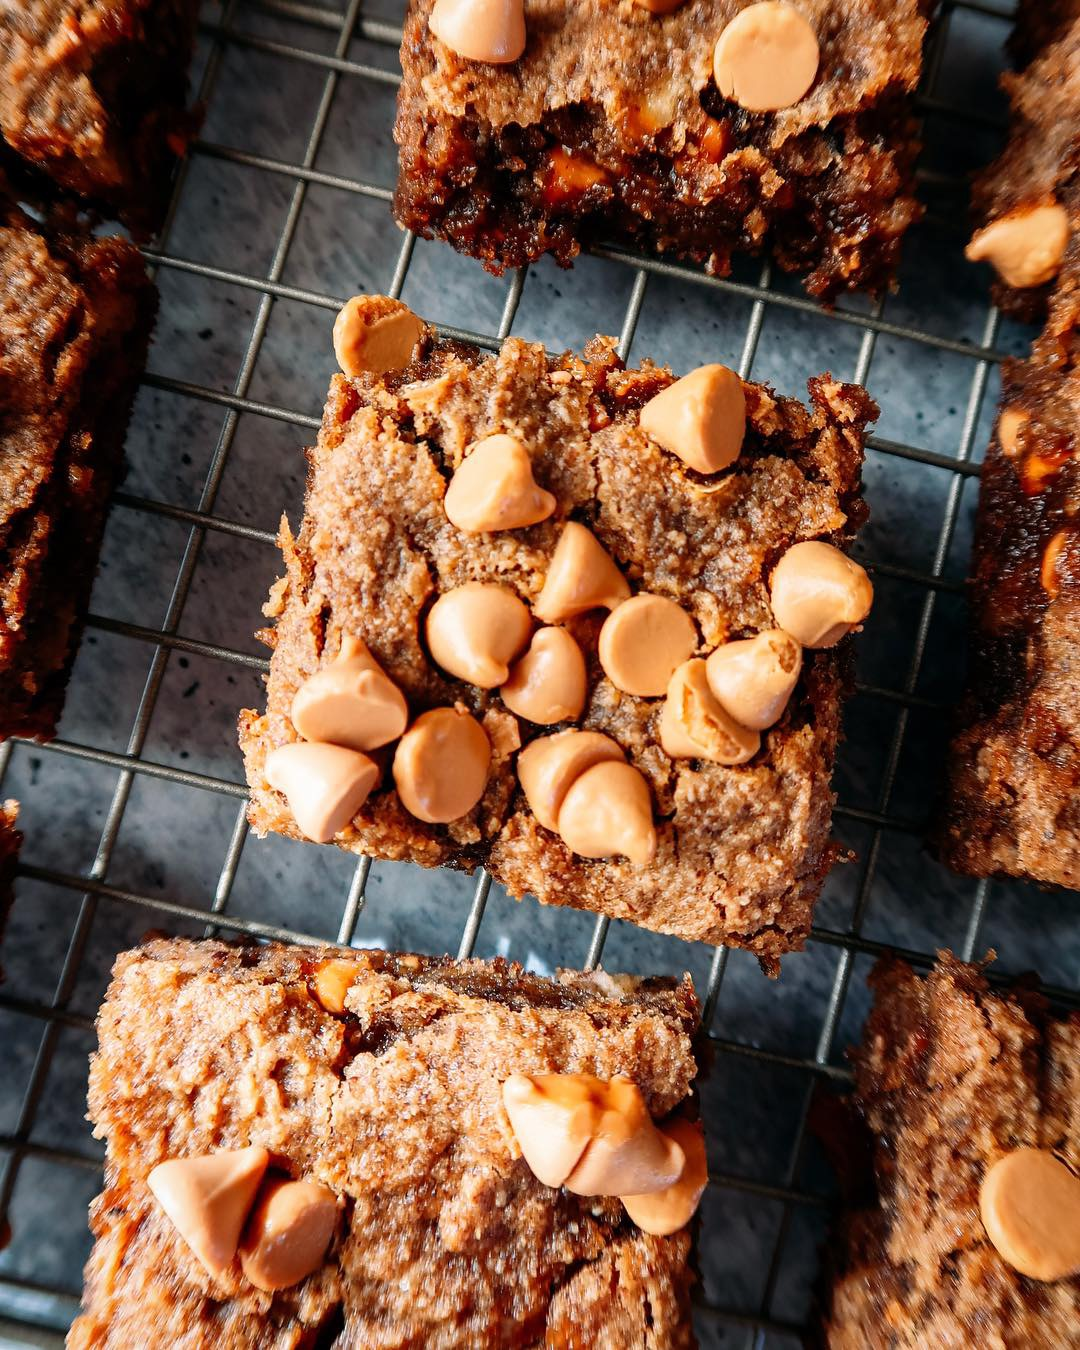 BUTTERSCOTCH BANANA BLONDIE - INGREDIENTS2 very ripe large bananas1/2 cup creamy almond butter1 tb vanilla extract3/4 cup almond flour1/4 cup coconut flour3/4 cup butterscotch chips1 tsp cinnamon1 tsp baking sodapinch sea salt